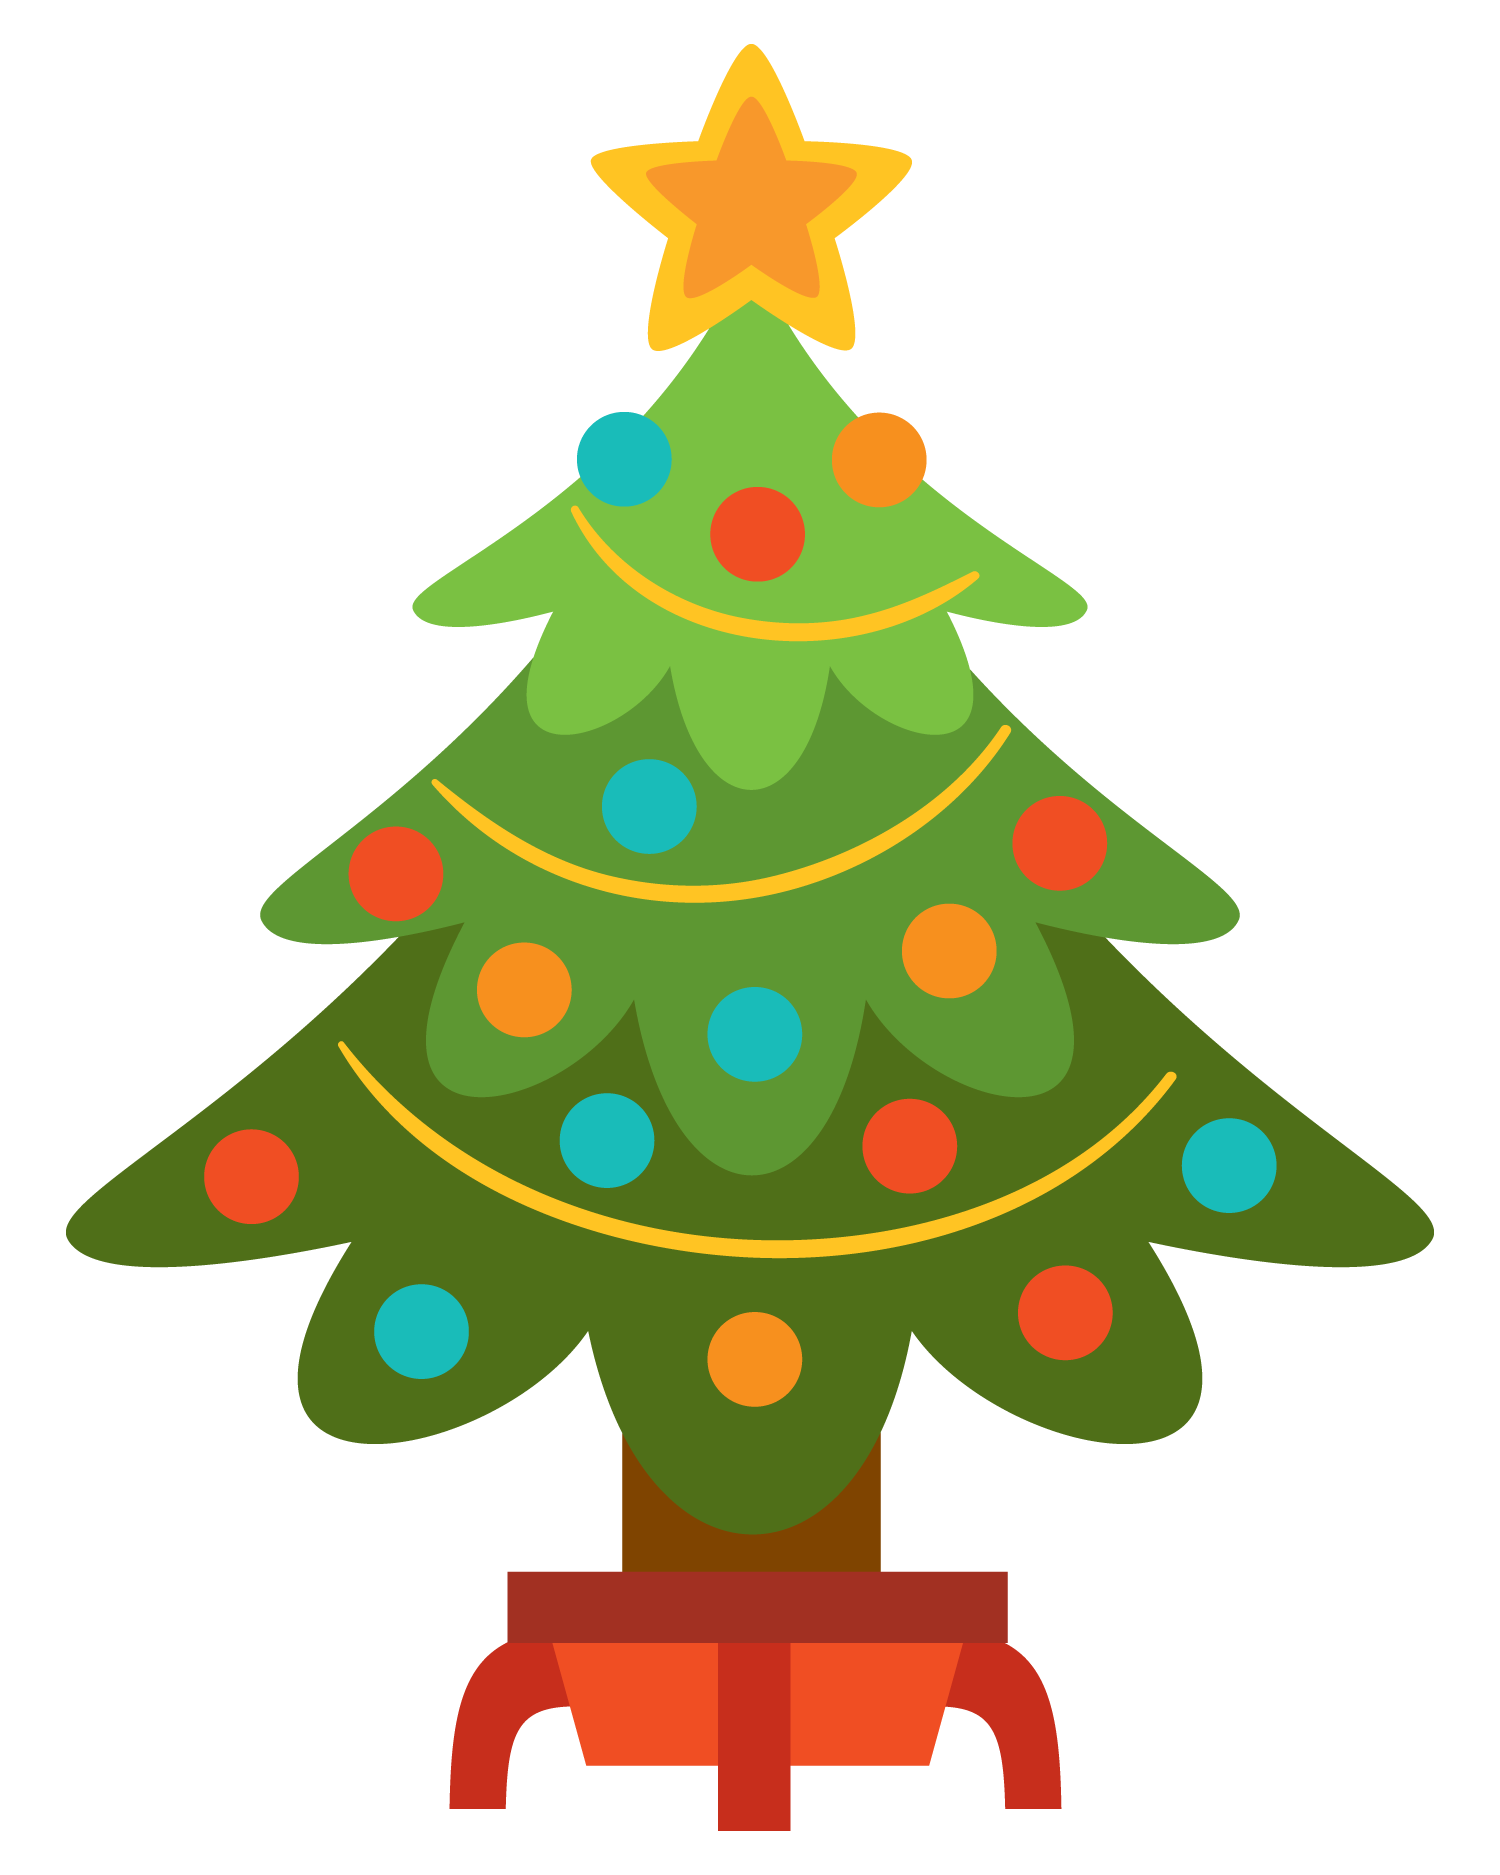 Free To Use Public Domain Christmas Clip